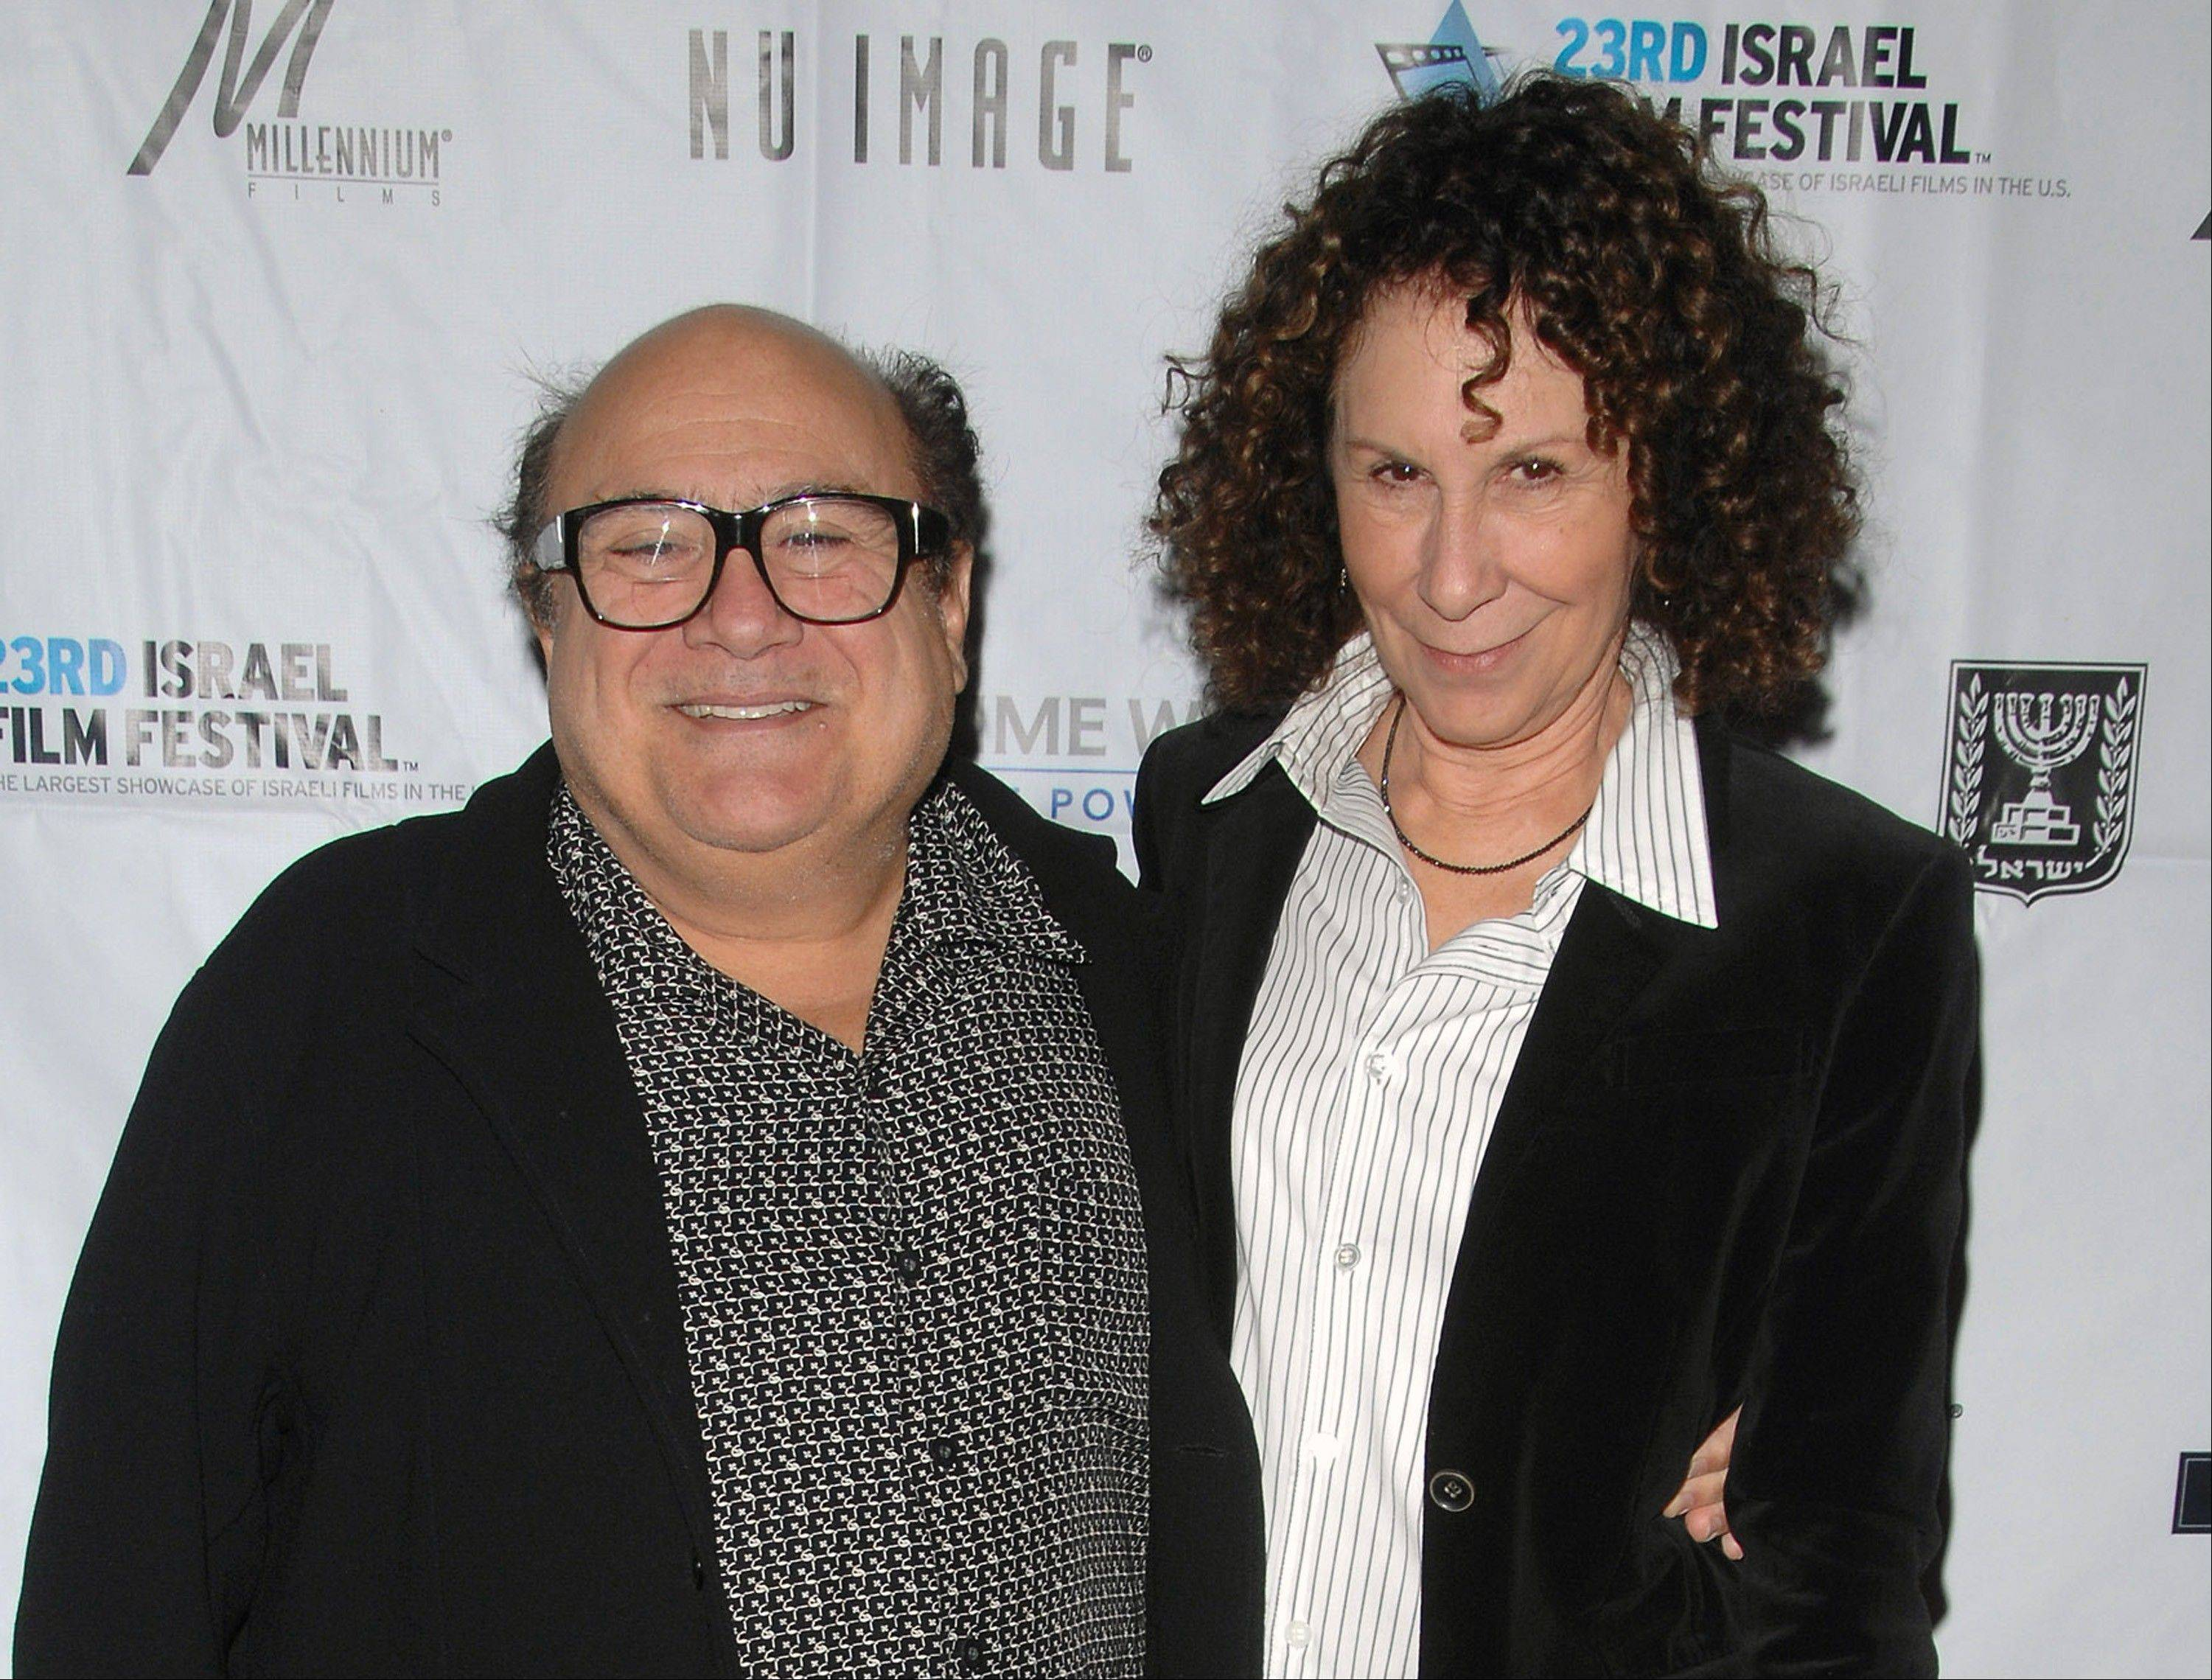 Danny DeVito and Rhea Perlman are separating after 30 years of marriage.